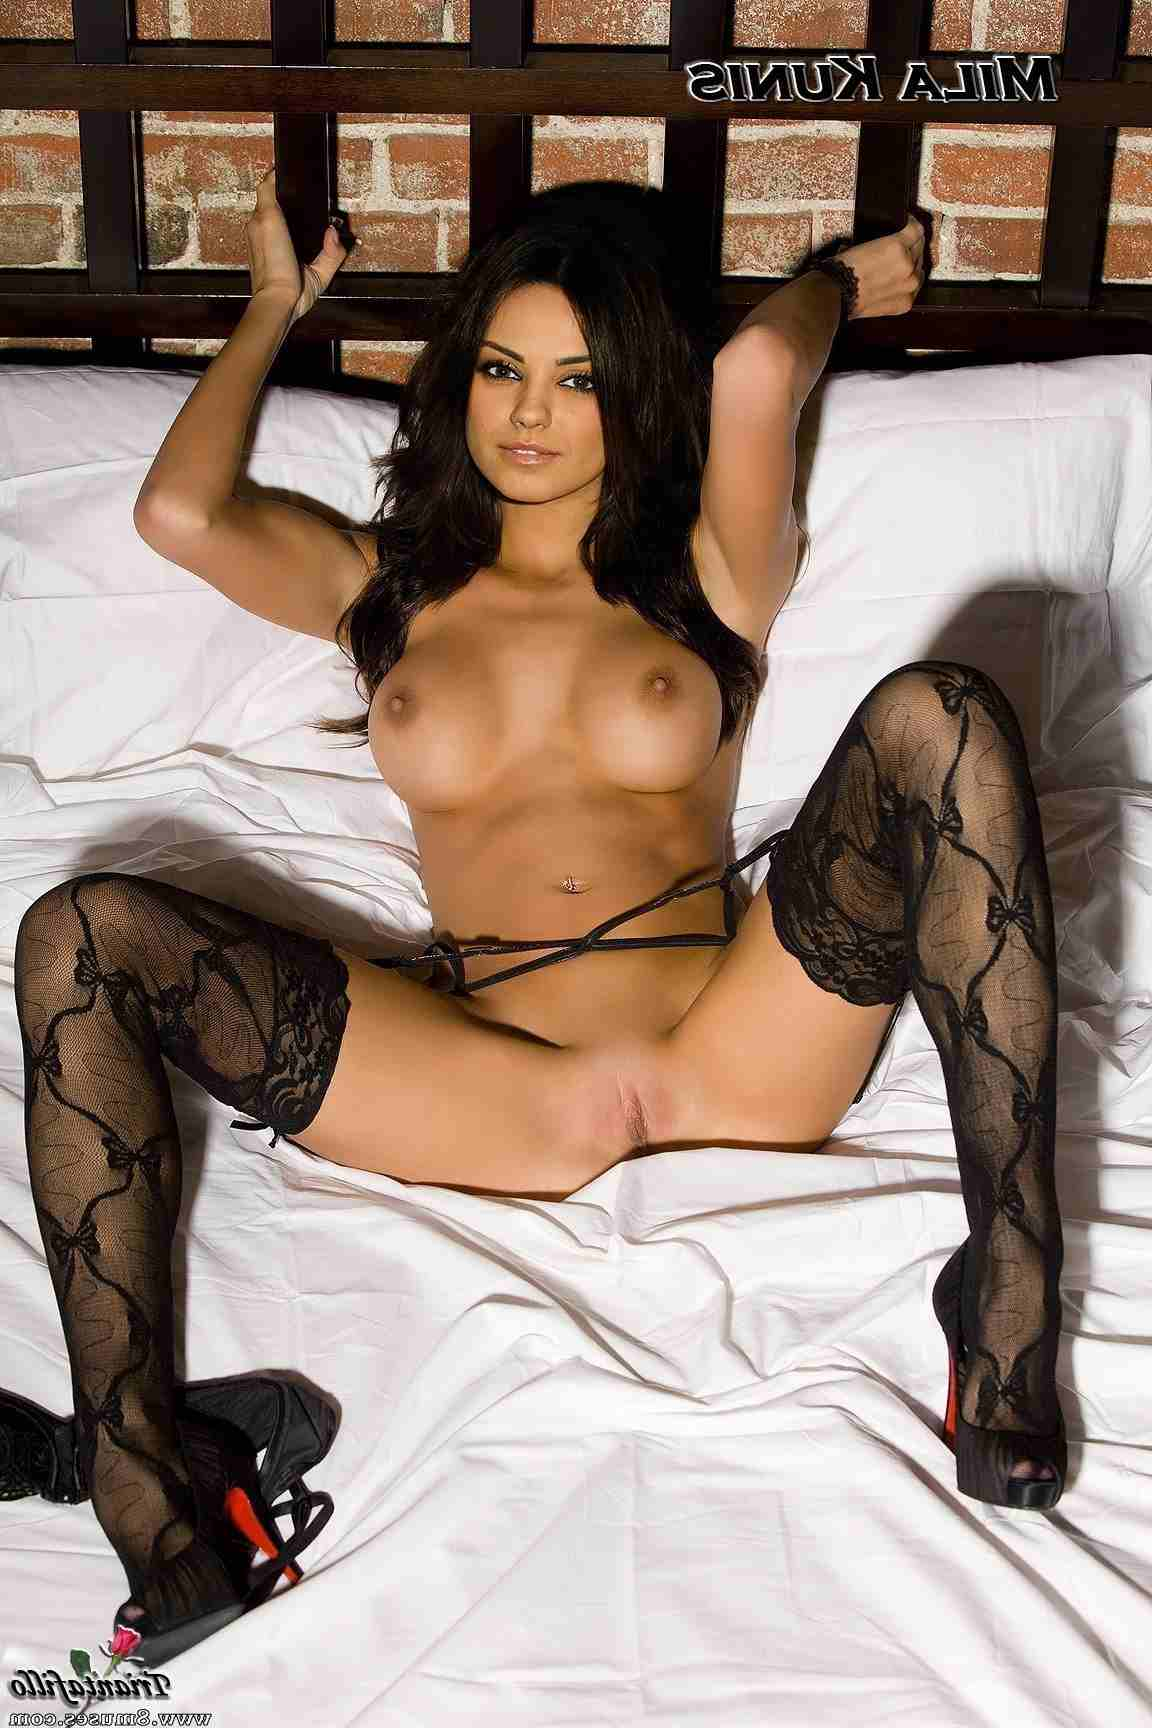 Fake-Celebrities-Sex-Pictures/Mila-Kunis Mila_Kunis__8muses_-_Sex_and_Porn_Comics_29.jpg